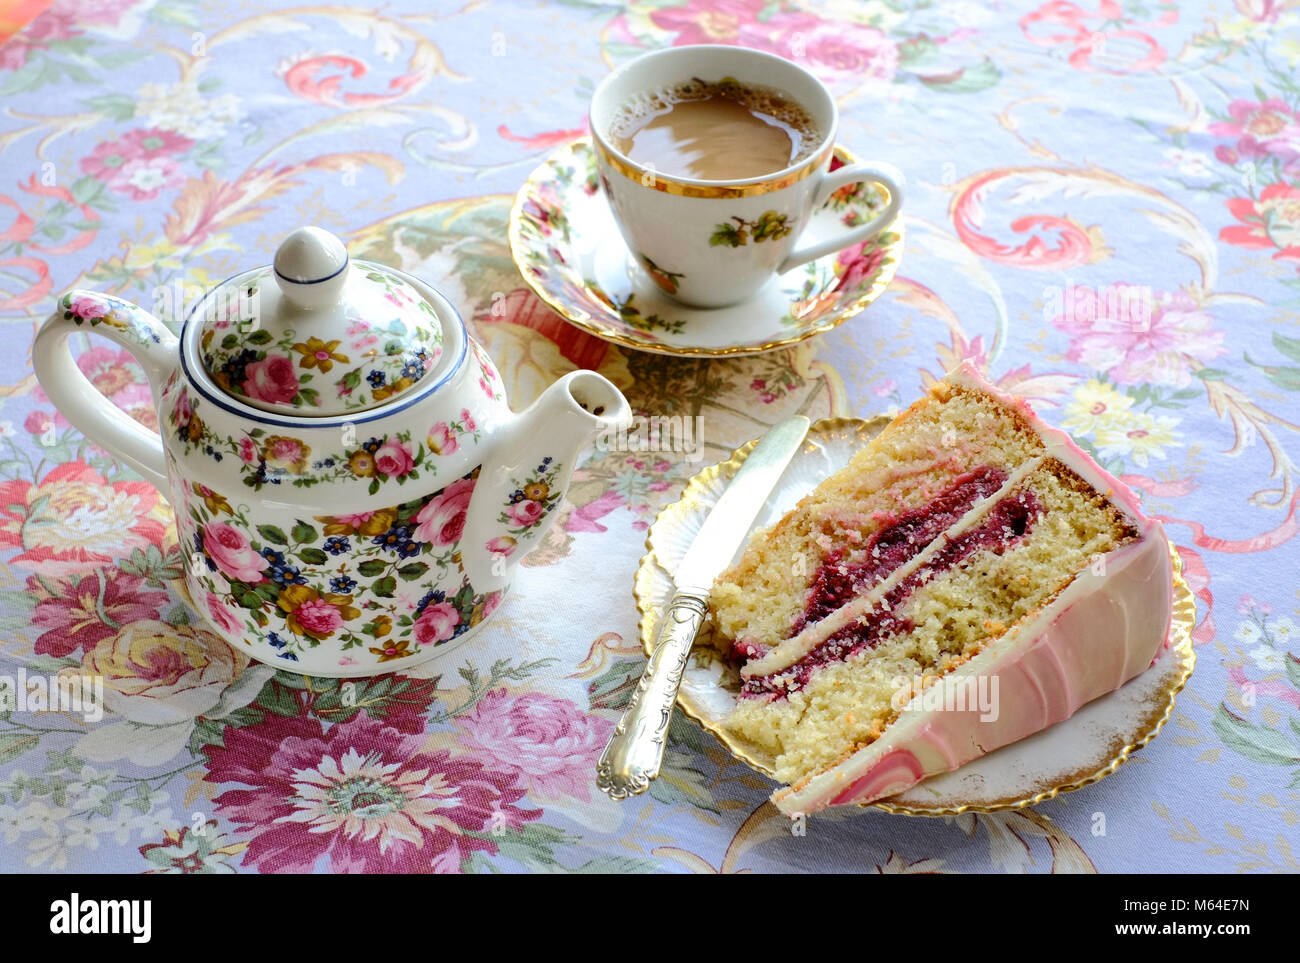 Afternoon tea at Heavenly cafe-chocolatier, Llandeilo, Carmarthenshire, Wales - Stock Image